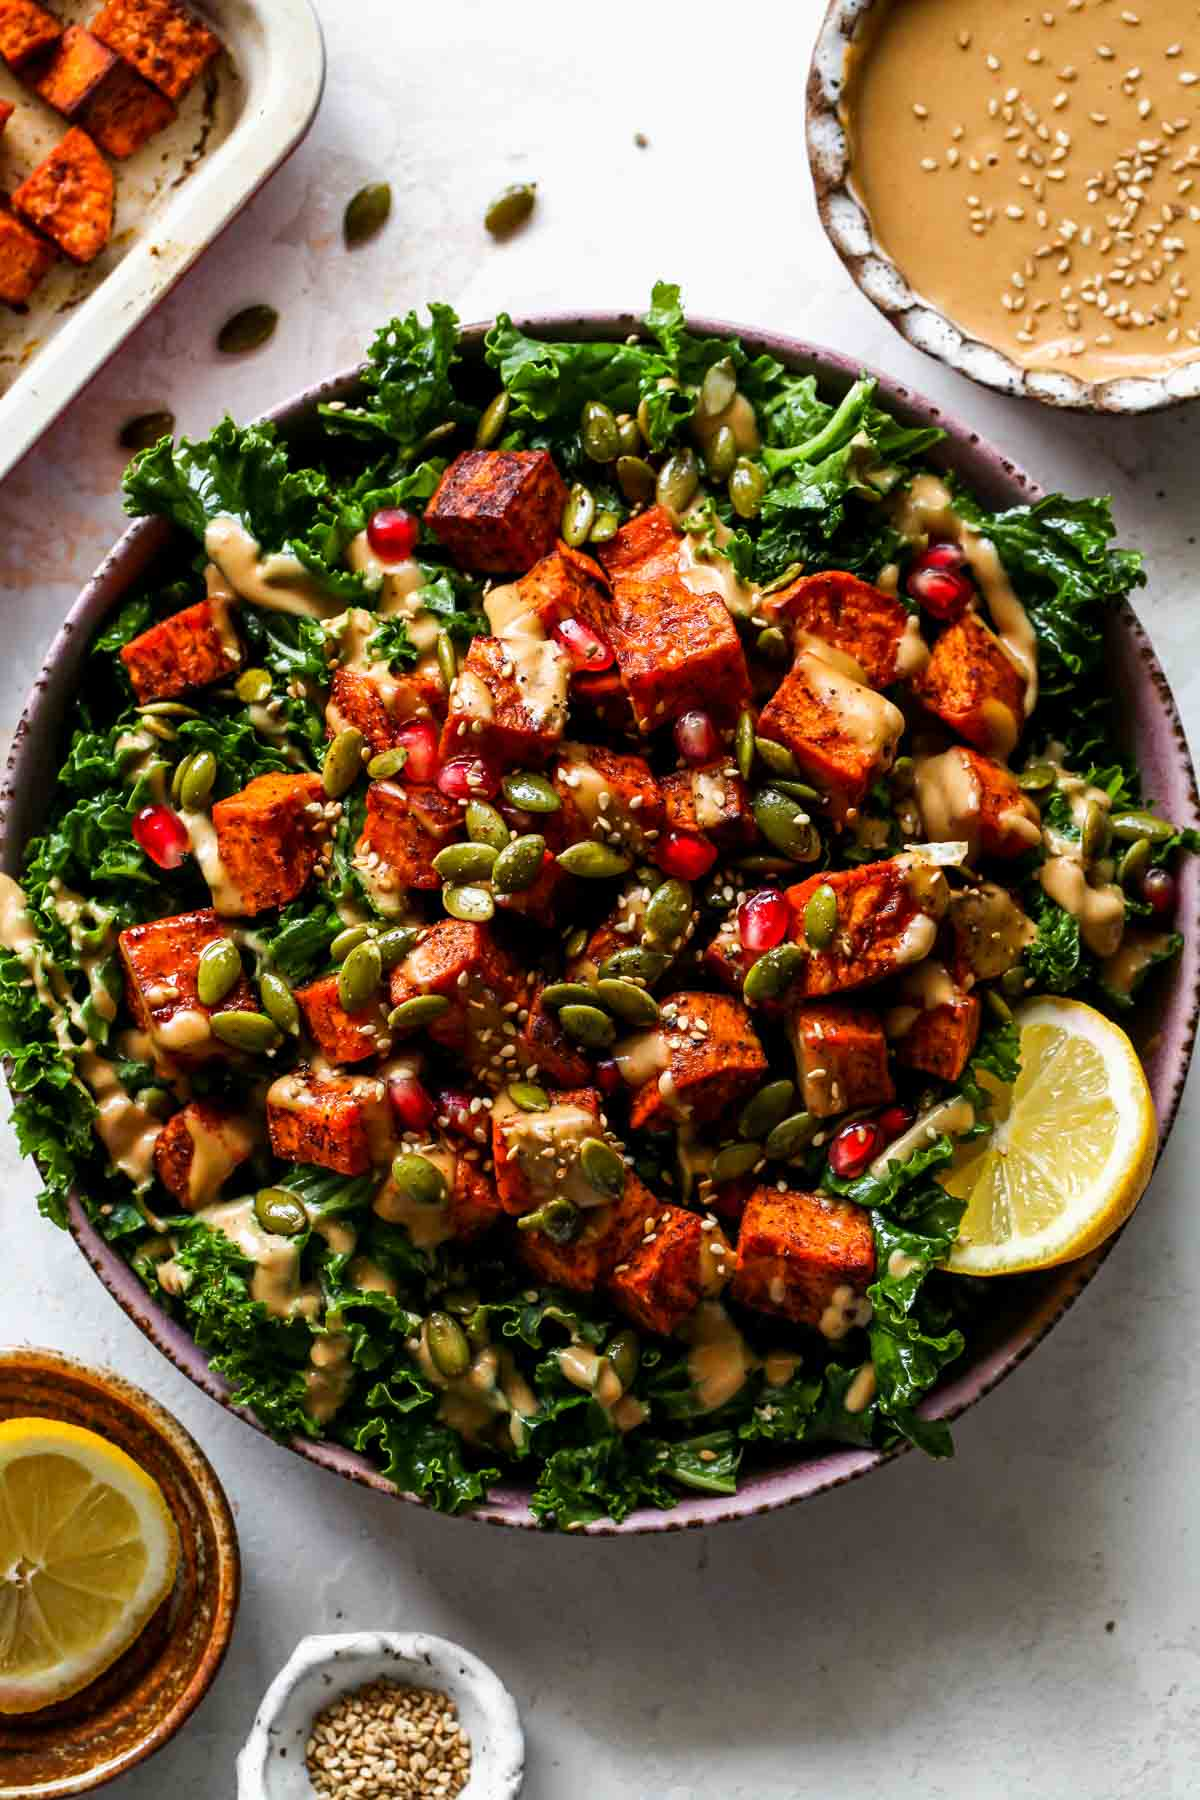 Kale salad topped with roasted sweet potatoes, pomegranate, and almond butter dressing